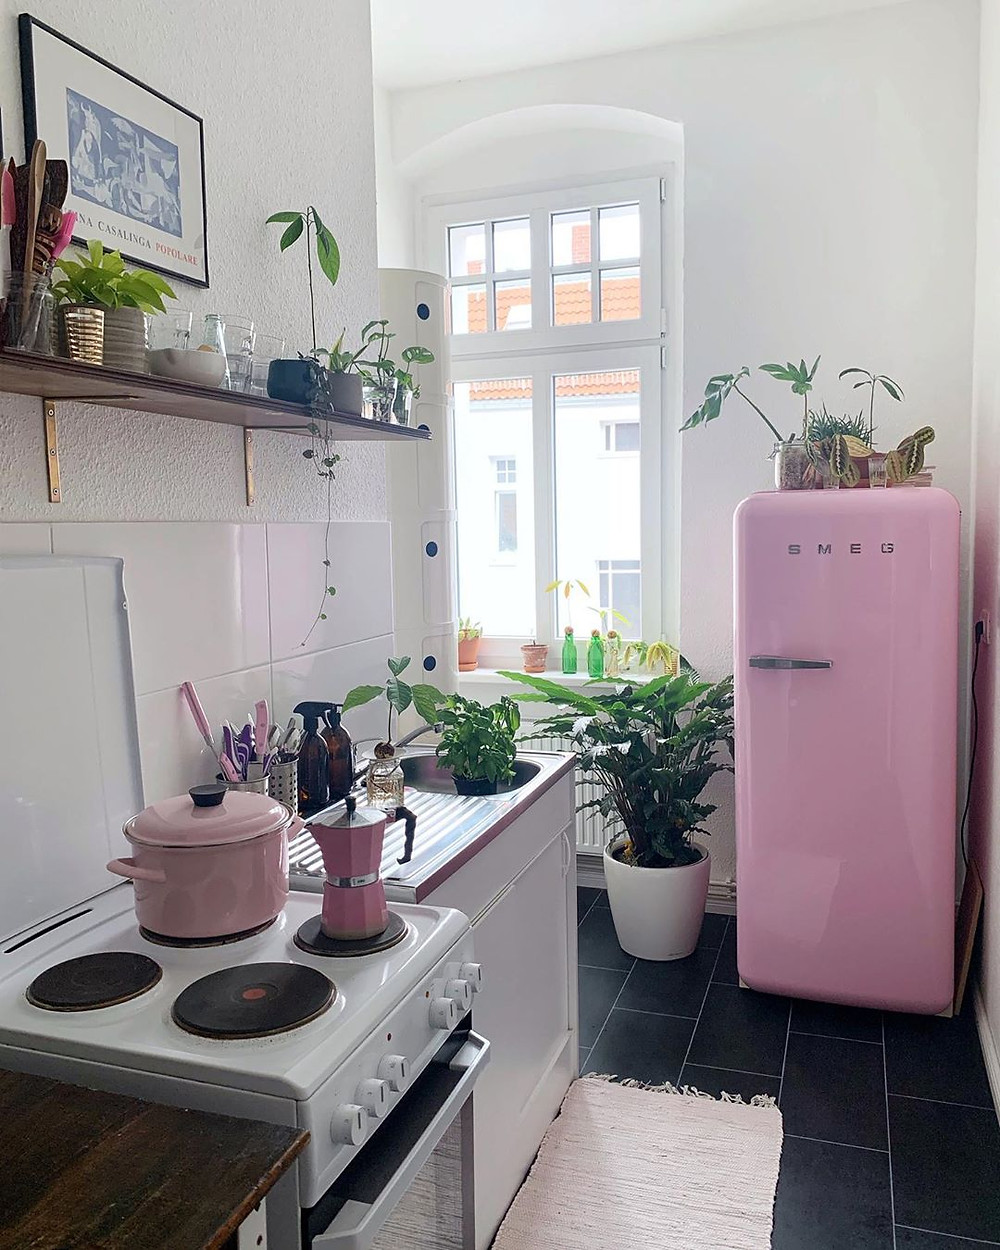 Dream bohemian kitchen decoration with pink refrigerator and black flooring